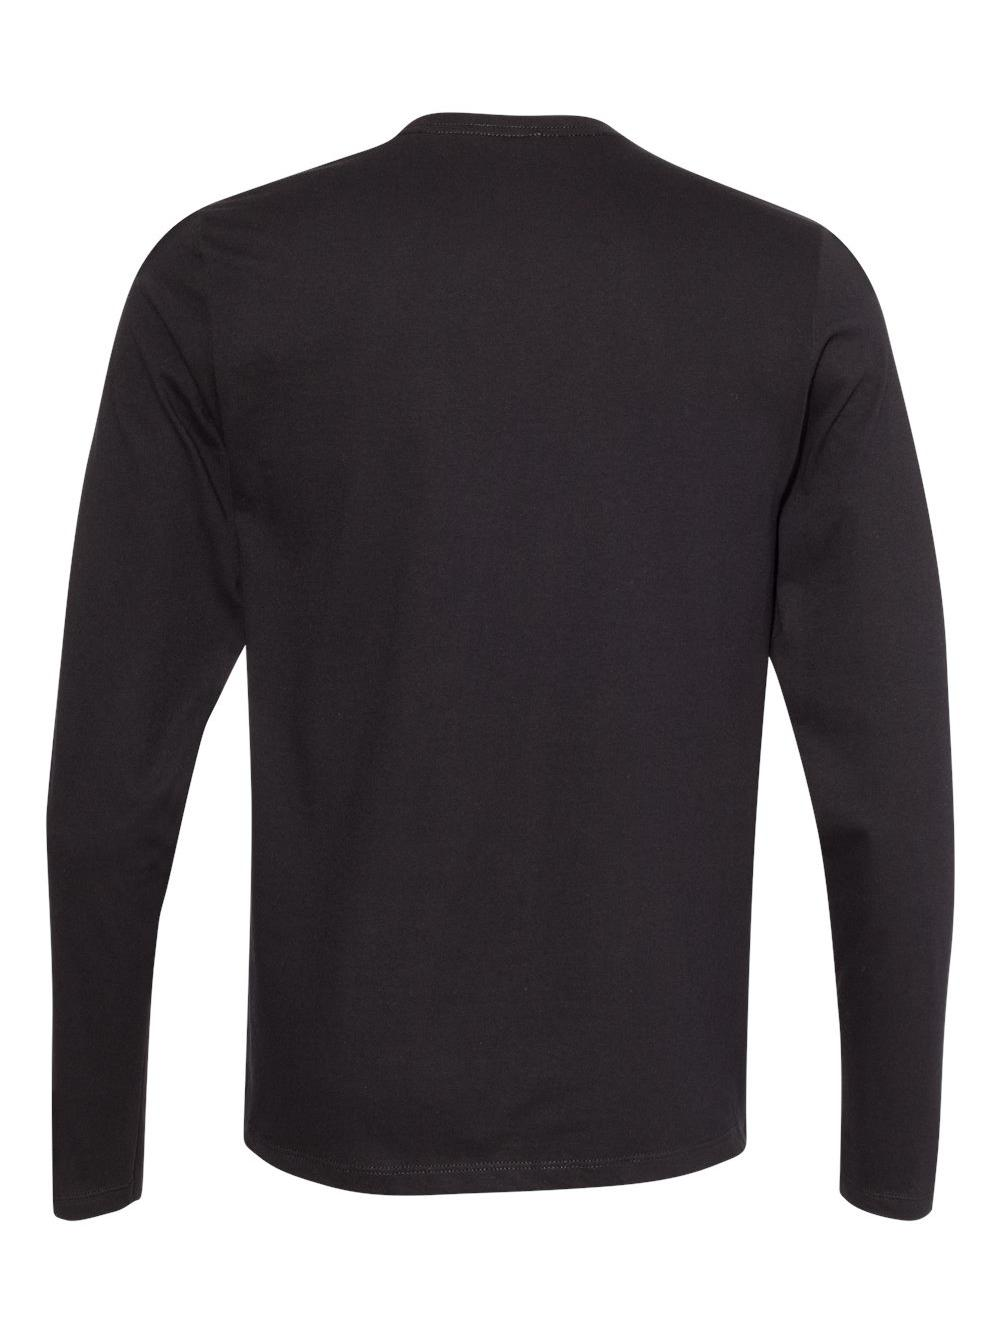 ALSTYLE-Ultimate-Long-Sleeve-T-Shirt-5304 thumbnail 5